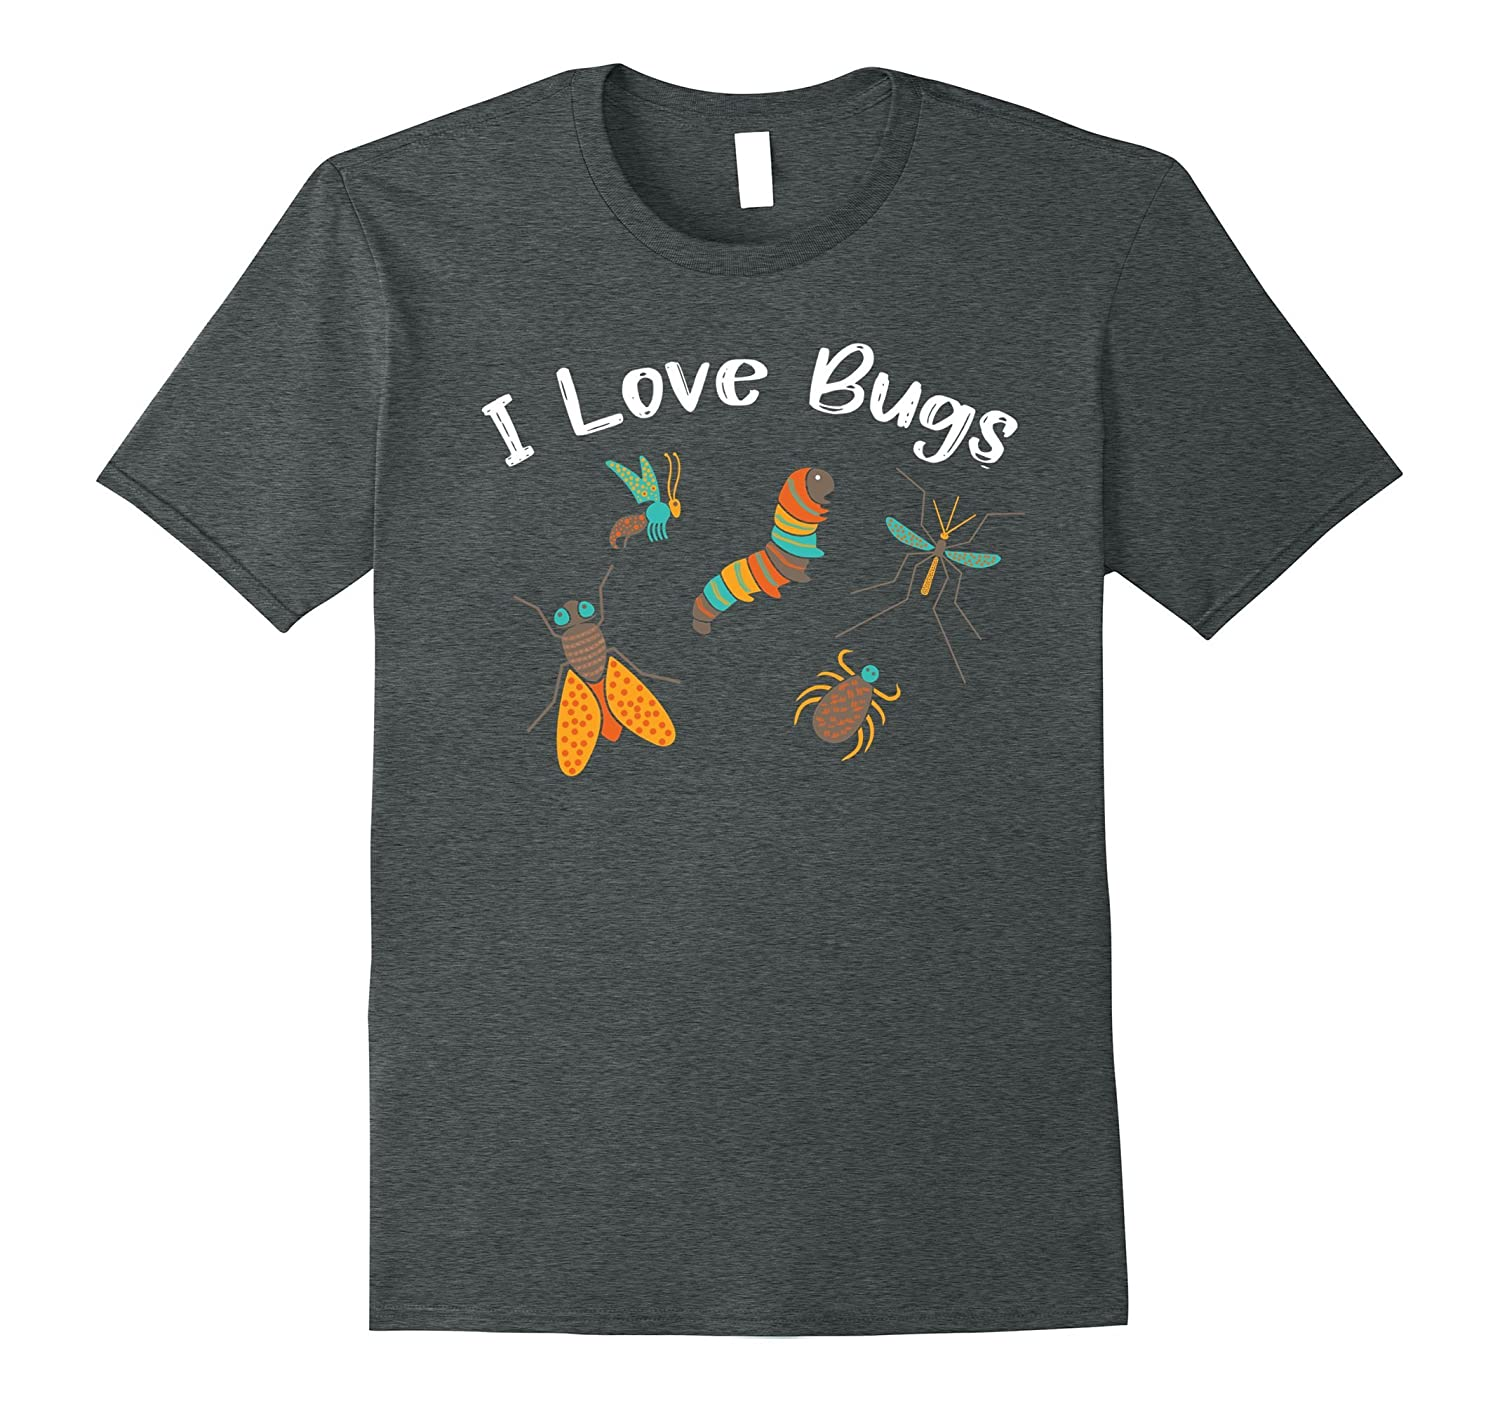 Bug Hunter T Shirts, Insect Lovers t-Shirt-ANZ